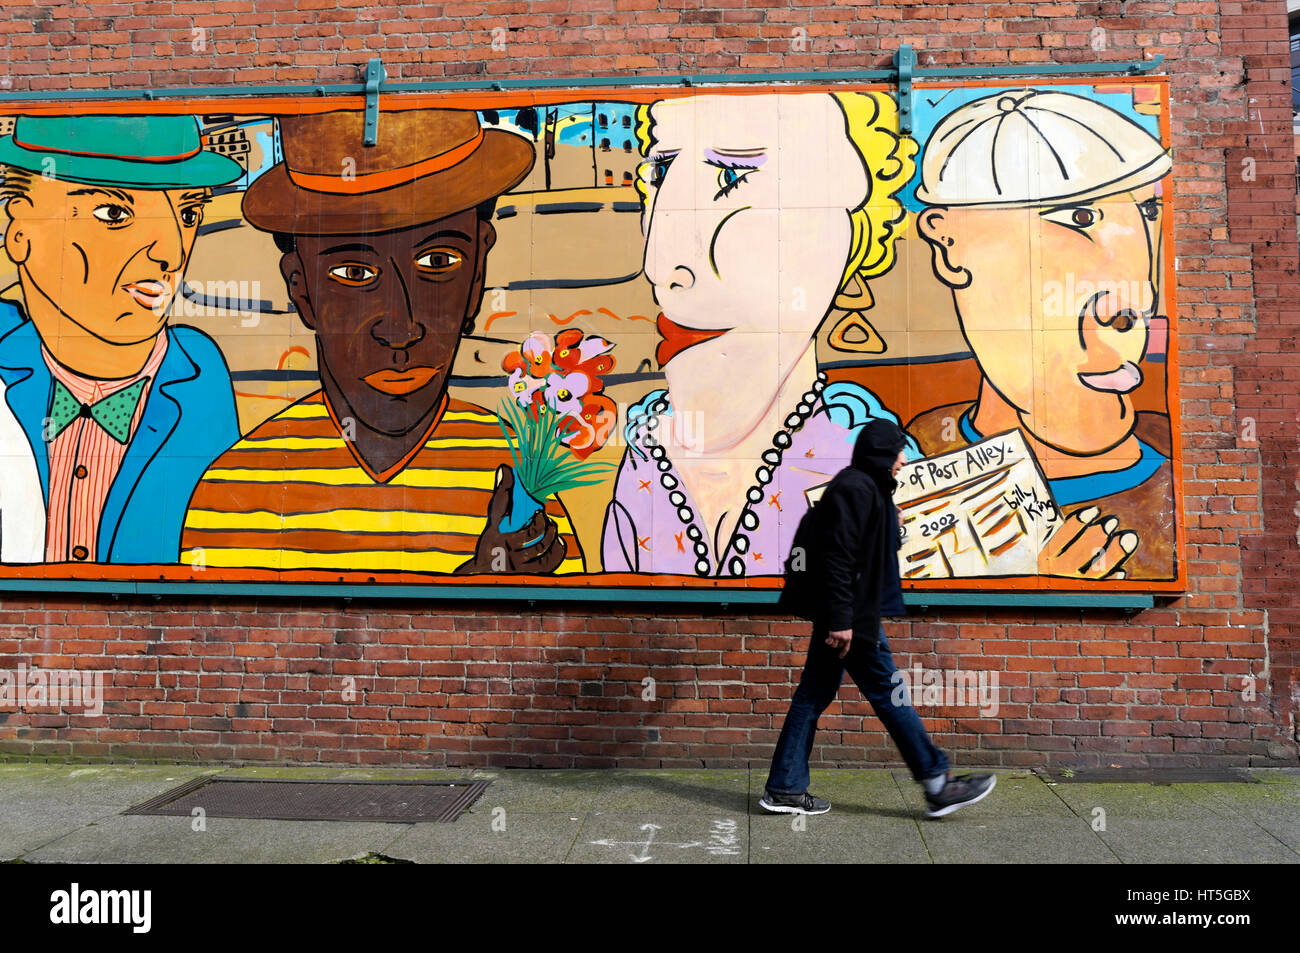 man-walking-past-a-street-mural-entitled